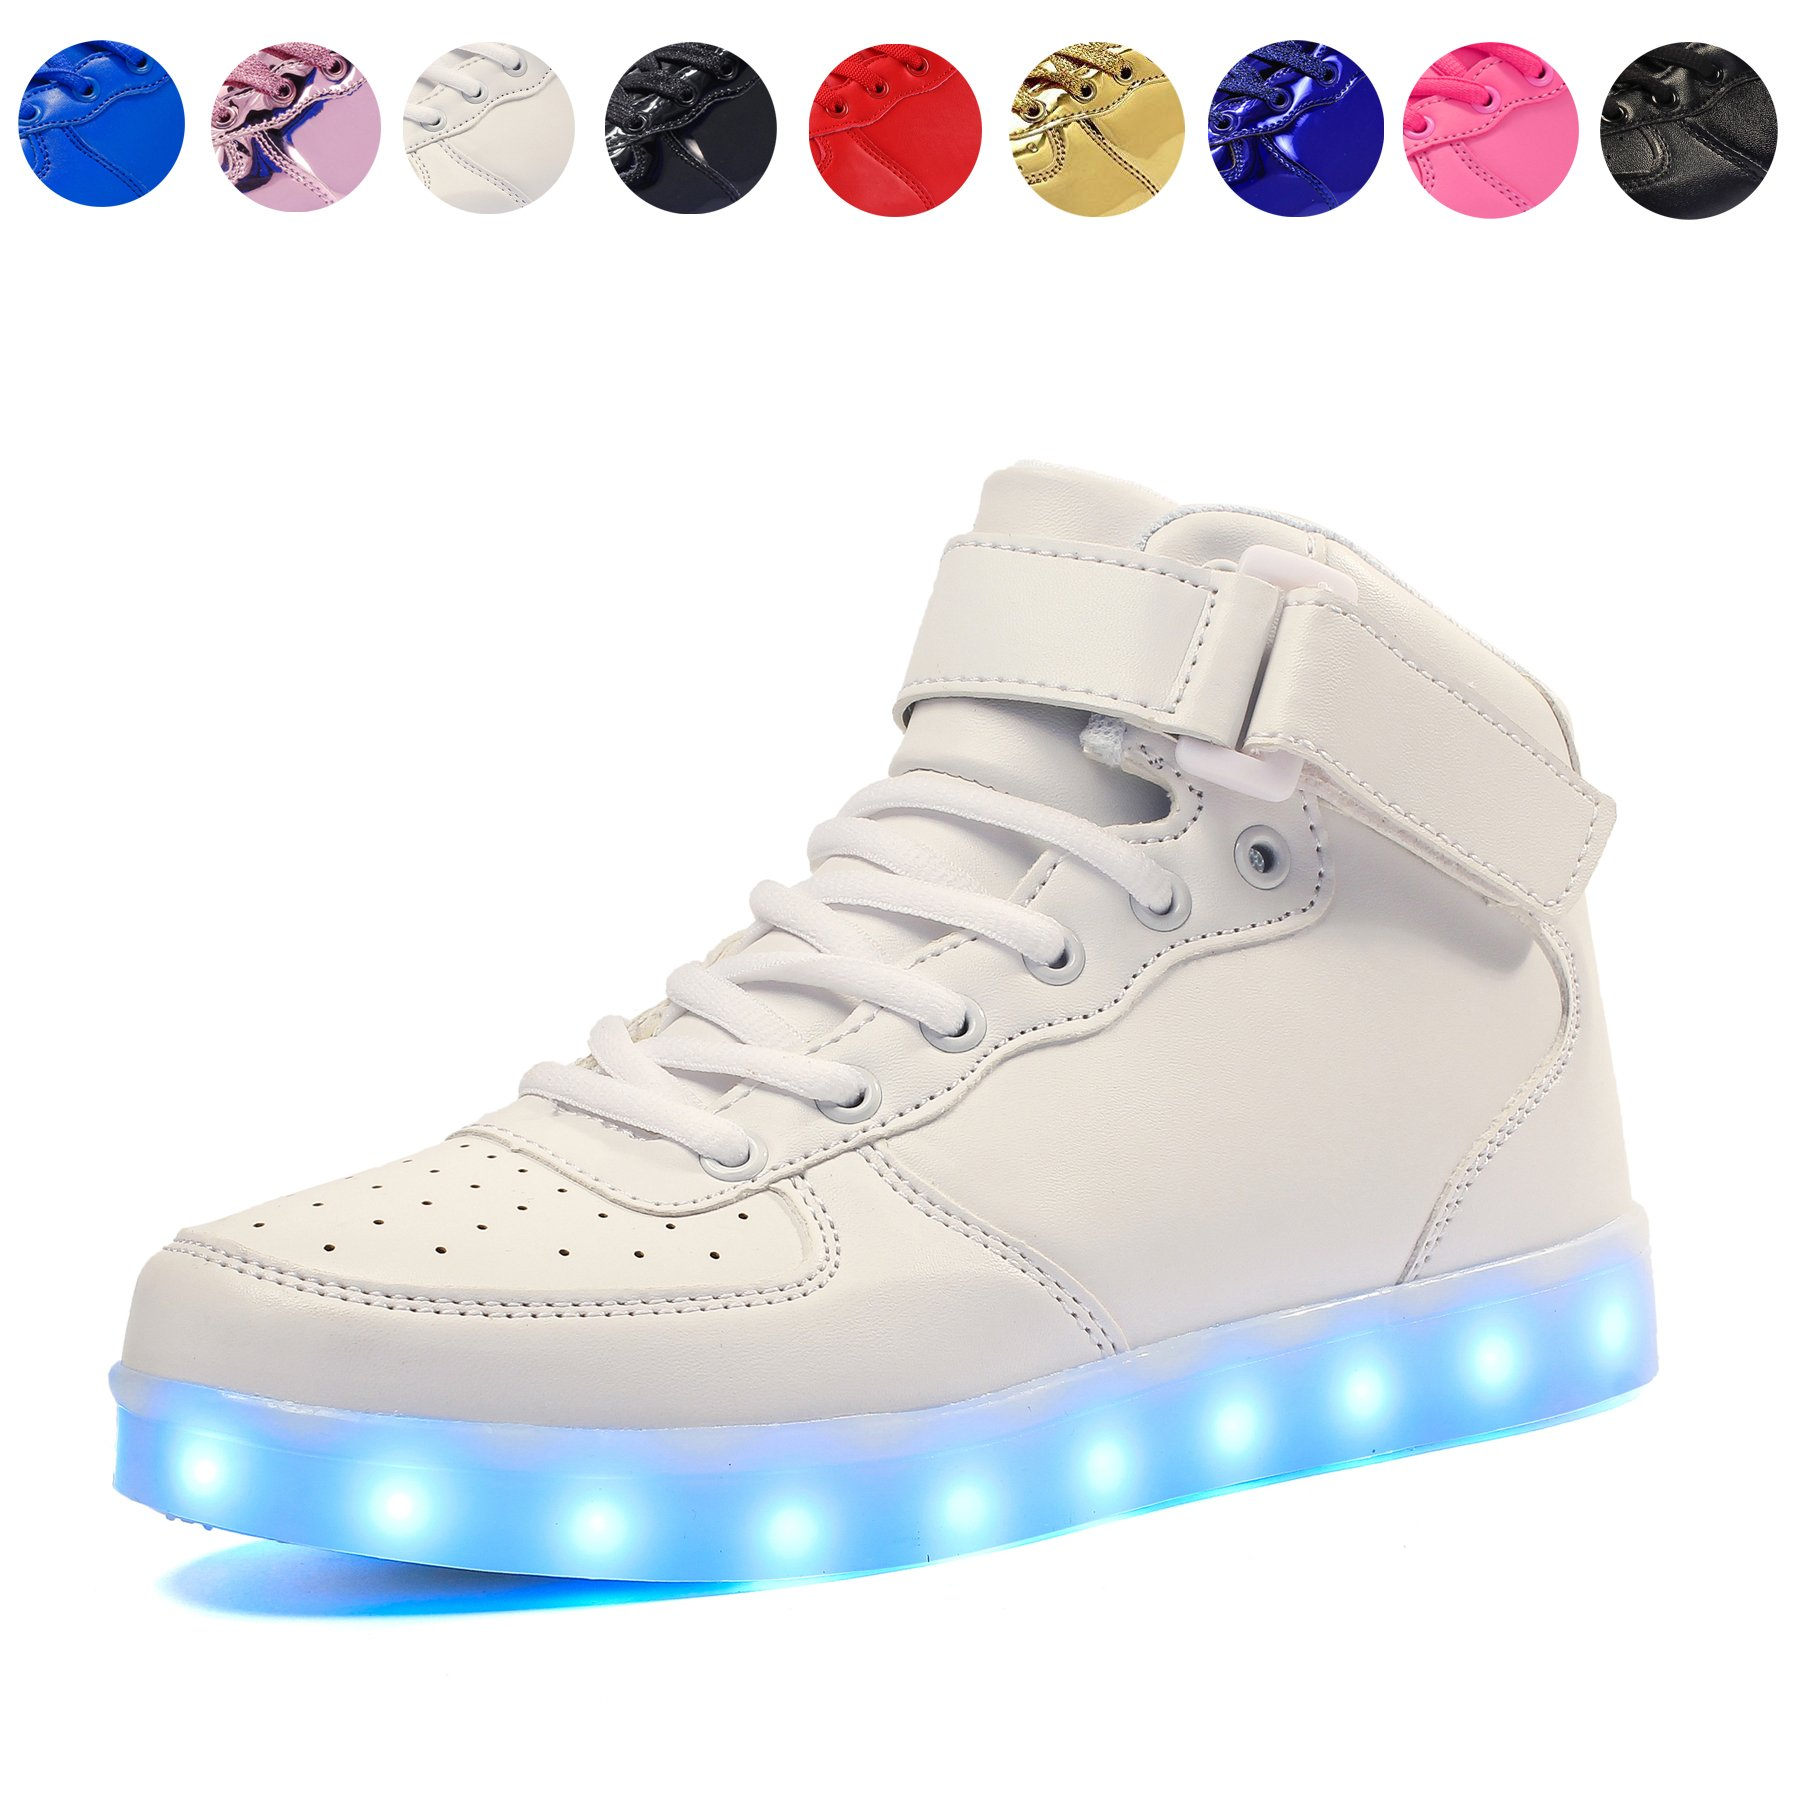 Voovix Kids LED Light up Shoes USB Charging Flashing High-top Sneakers for Boys and Girls Child Unisex(White,US13/CN32)